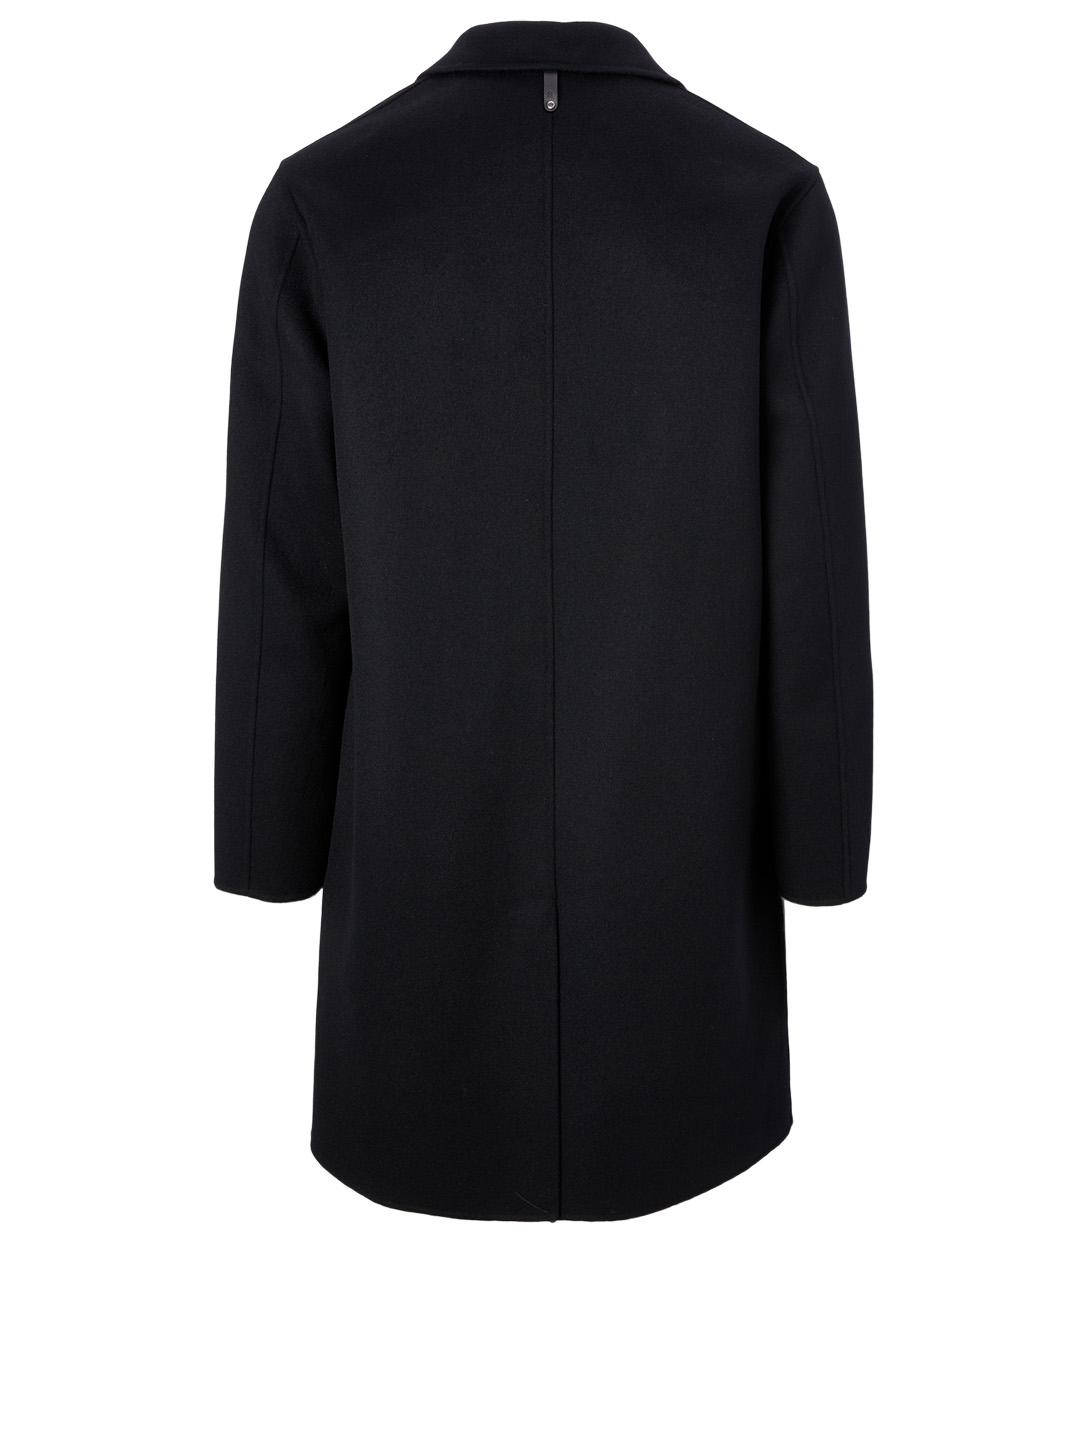 MACKAGE Vico Wool Coat Men's Black